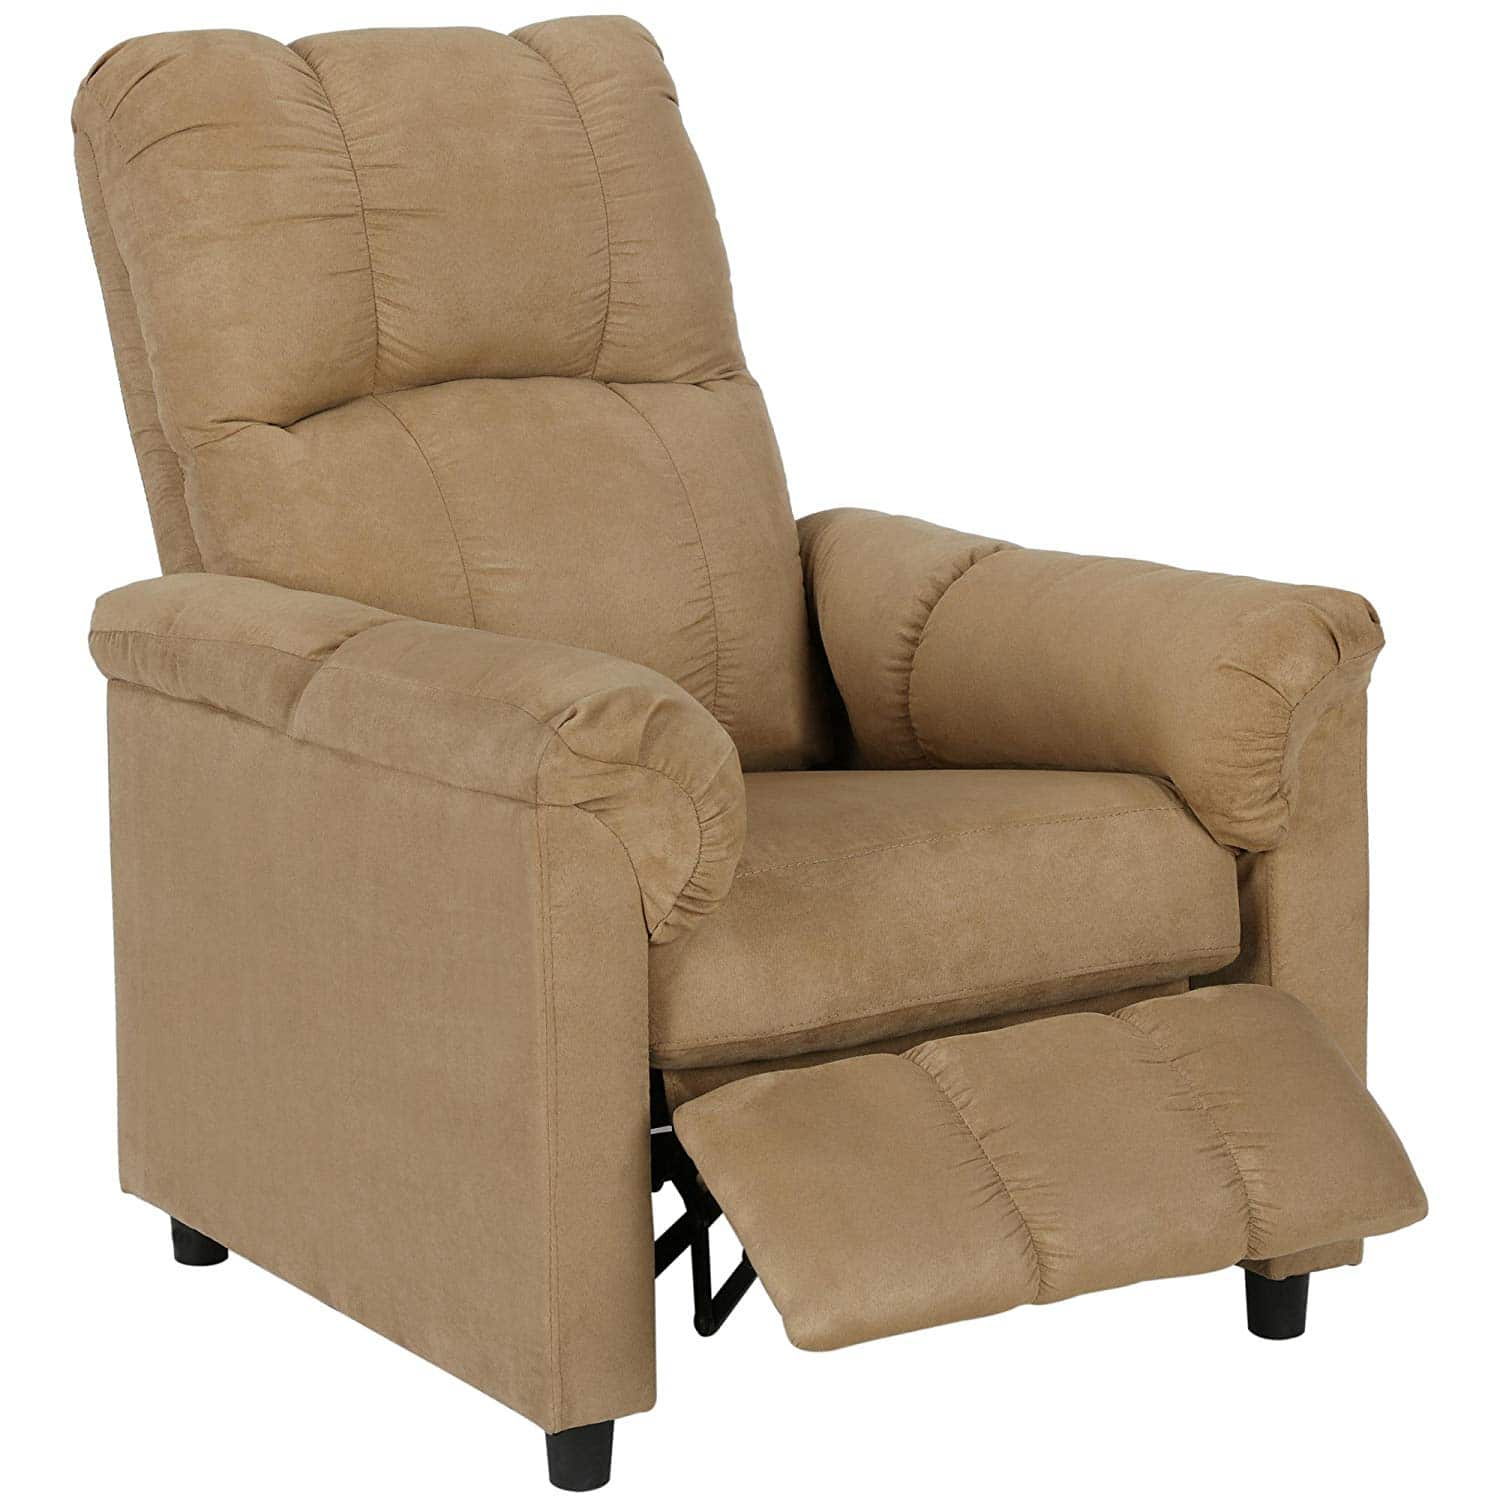 Cheapest Recliners with Good Quality Critical Reviews of